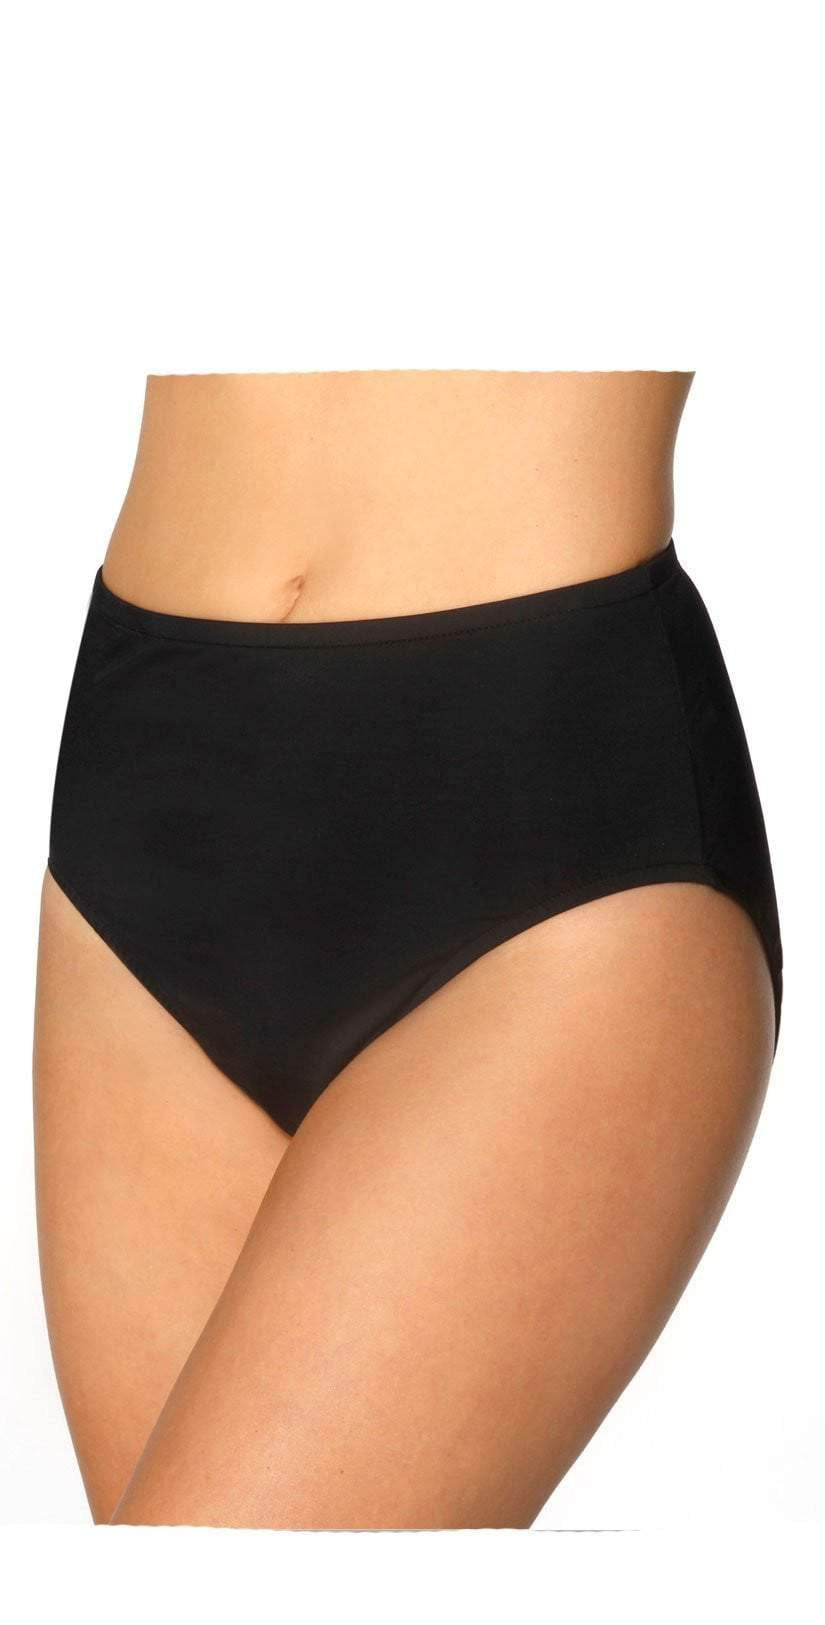 Miraclesuit Black Basic Brief Bottom 6518801-BLK: